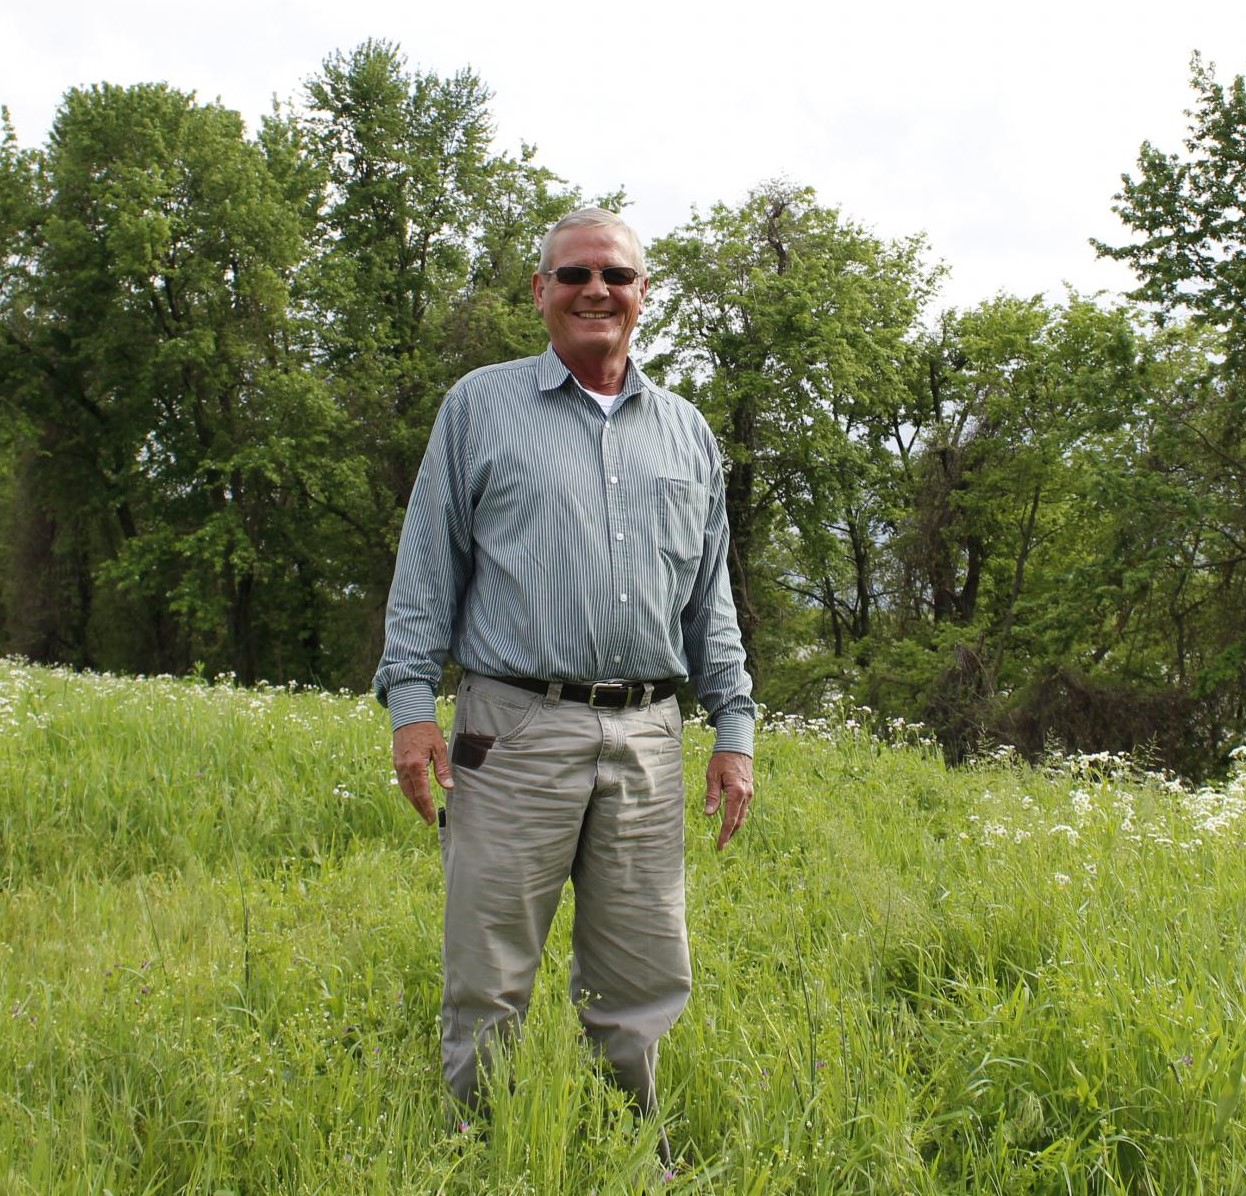 Larry Klein, who is one the local port authority board and works with the utility, stands next to the Mississippi River on land where they're hoping to build a port. The city owns this land, but the utility manages it. (photo courtesy of  Madelyn Beck Illinois Newsroom)